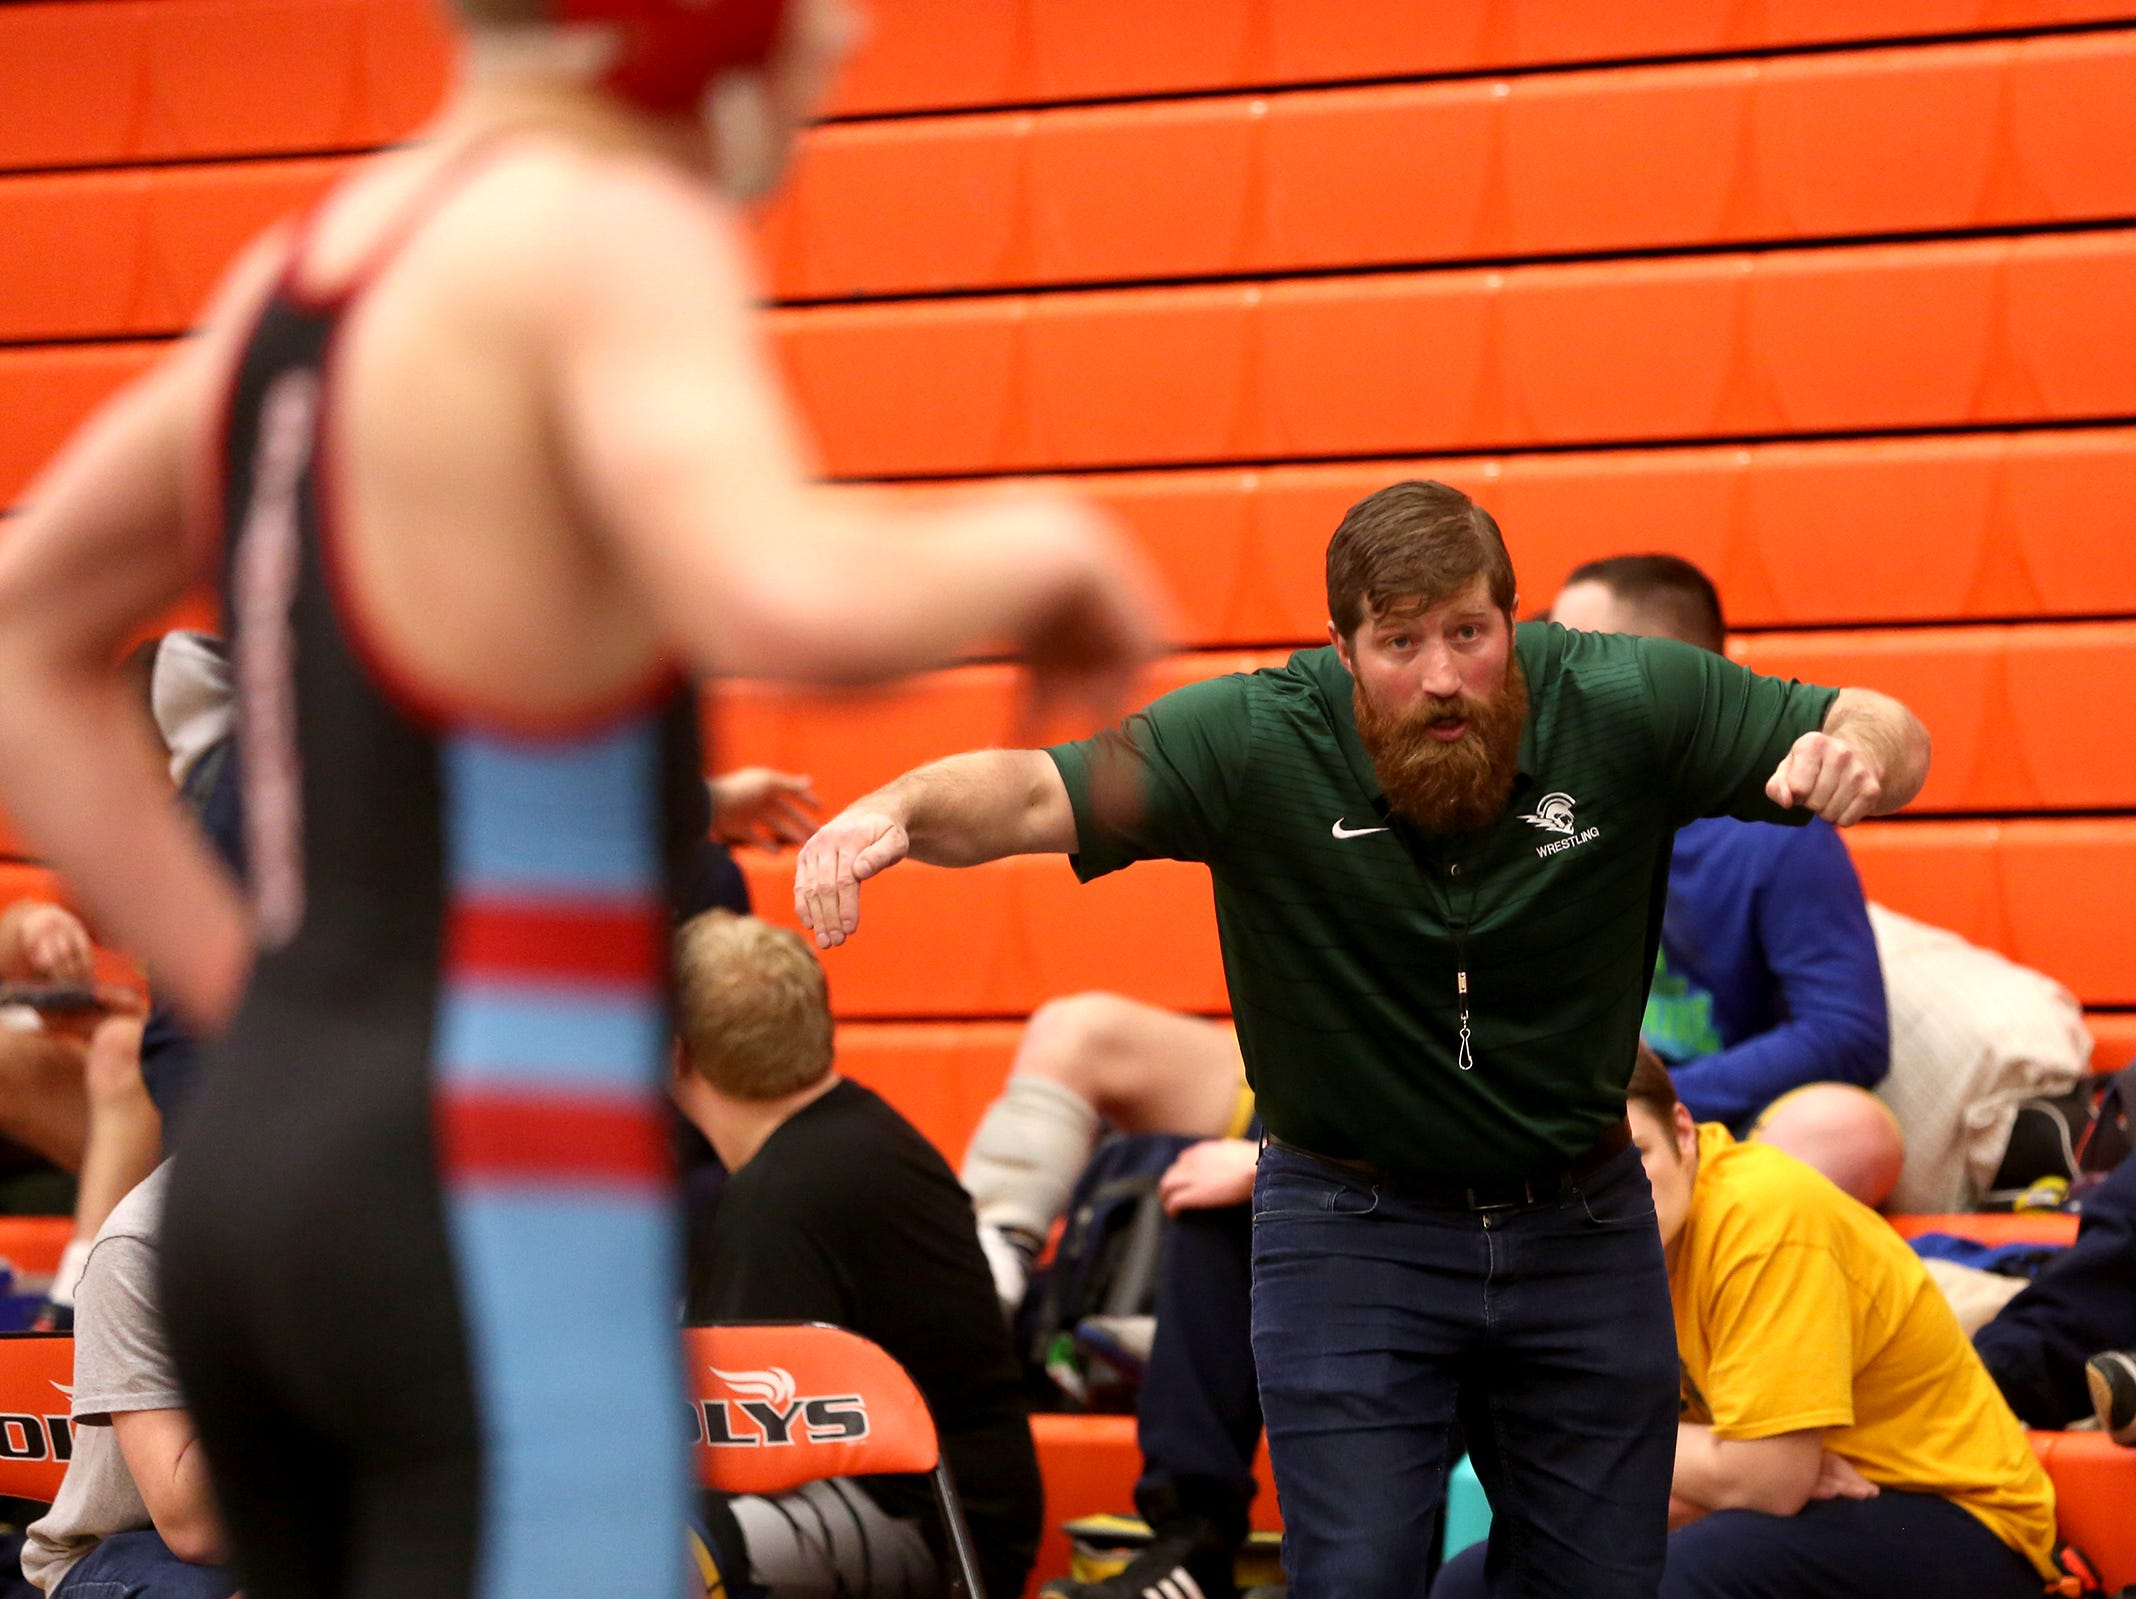 Assistant Wrestling Coach Tray Thomas demonstrates a move to one of his wrestlers during the Mountain Valley Conference district wrestling tournament at Sprague High School in Salem on Friday, Feb. 15, 2019.